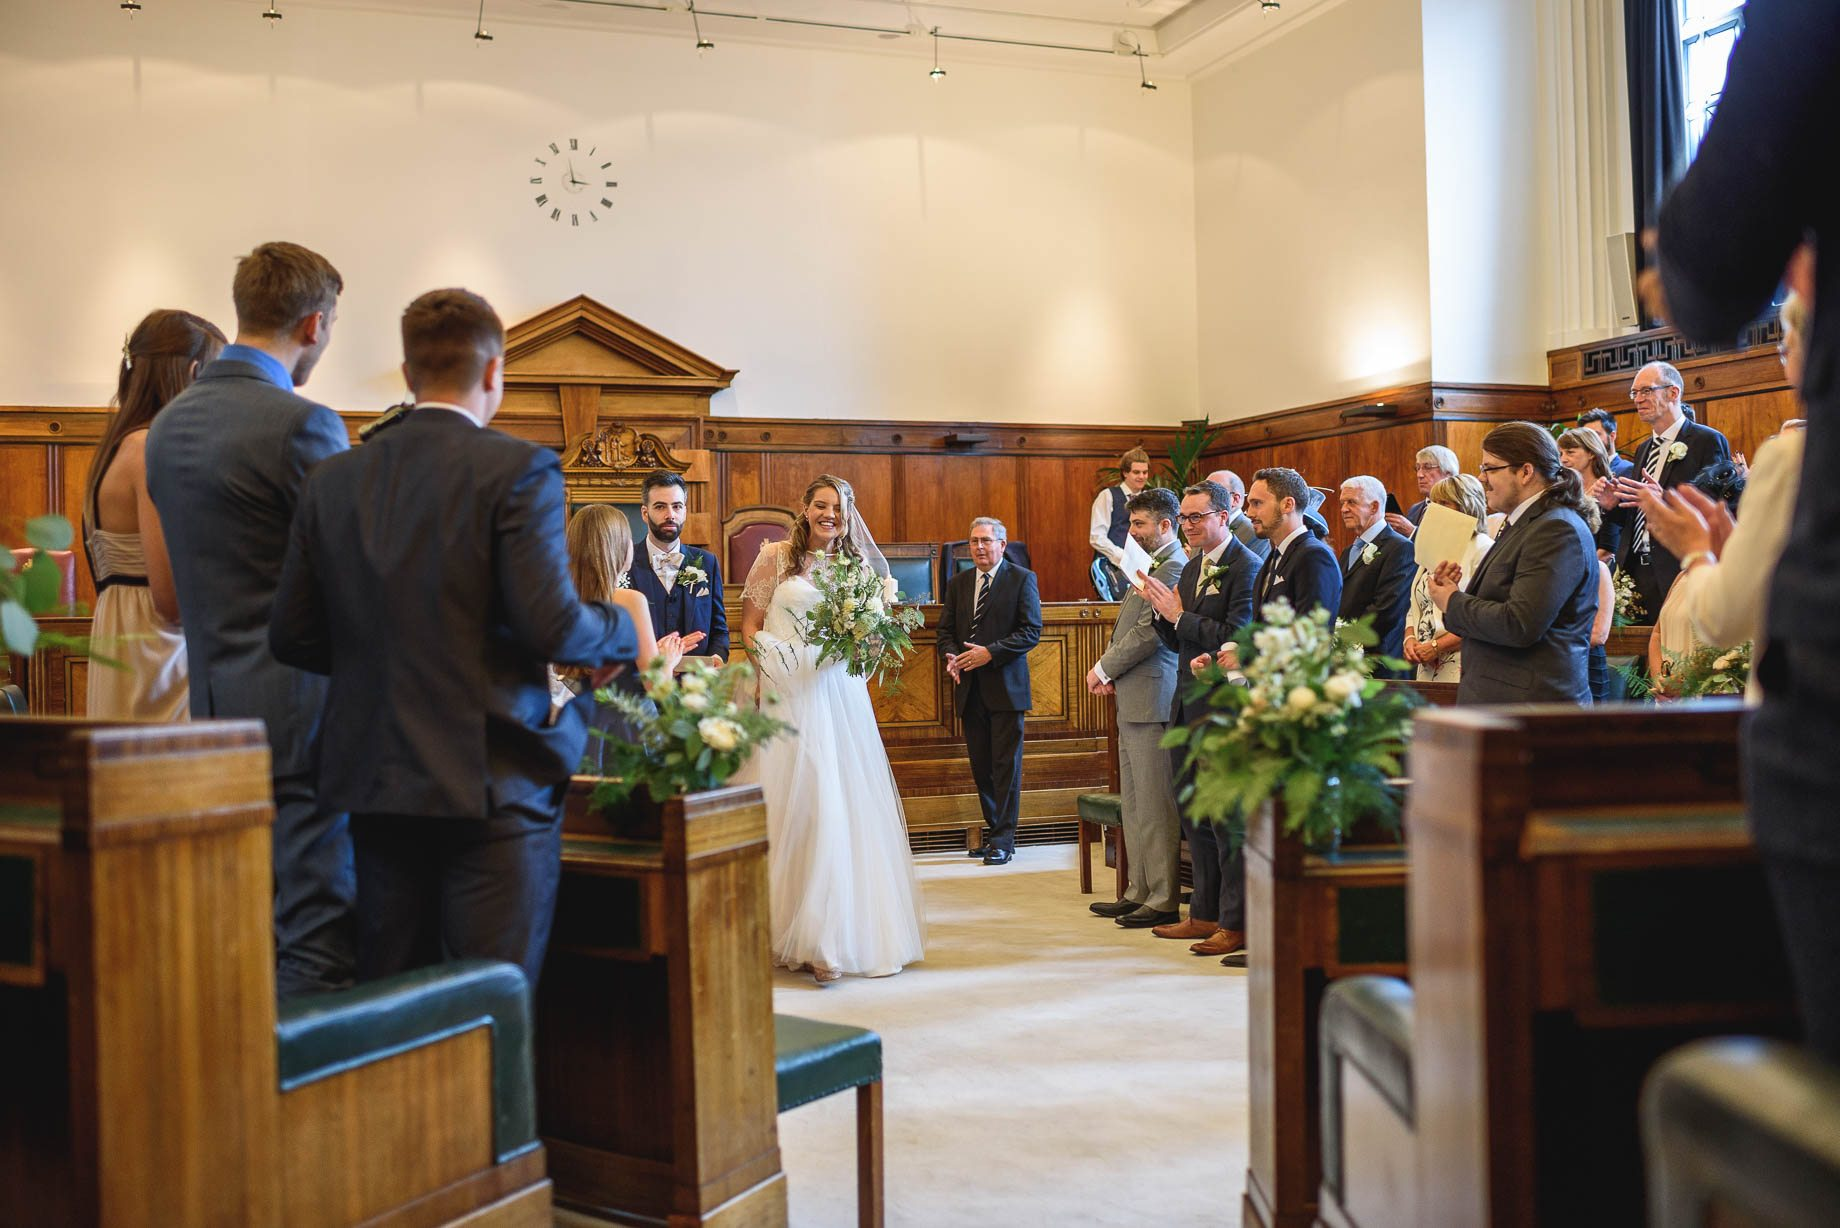 London Wedding Photography - Guy Collier Photography - LJ + Russell (64 of 155)